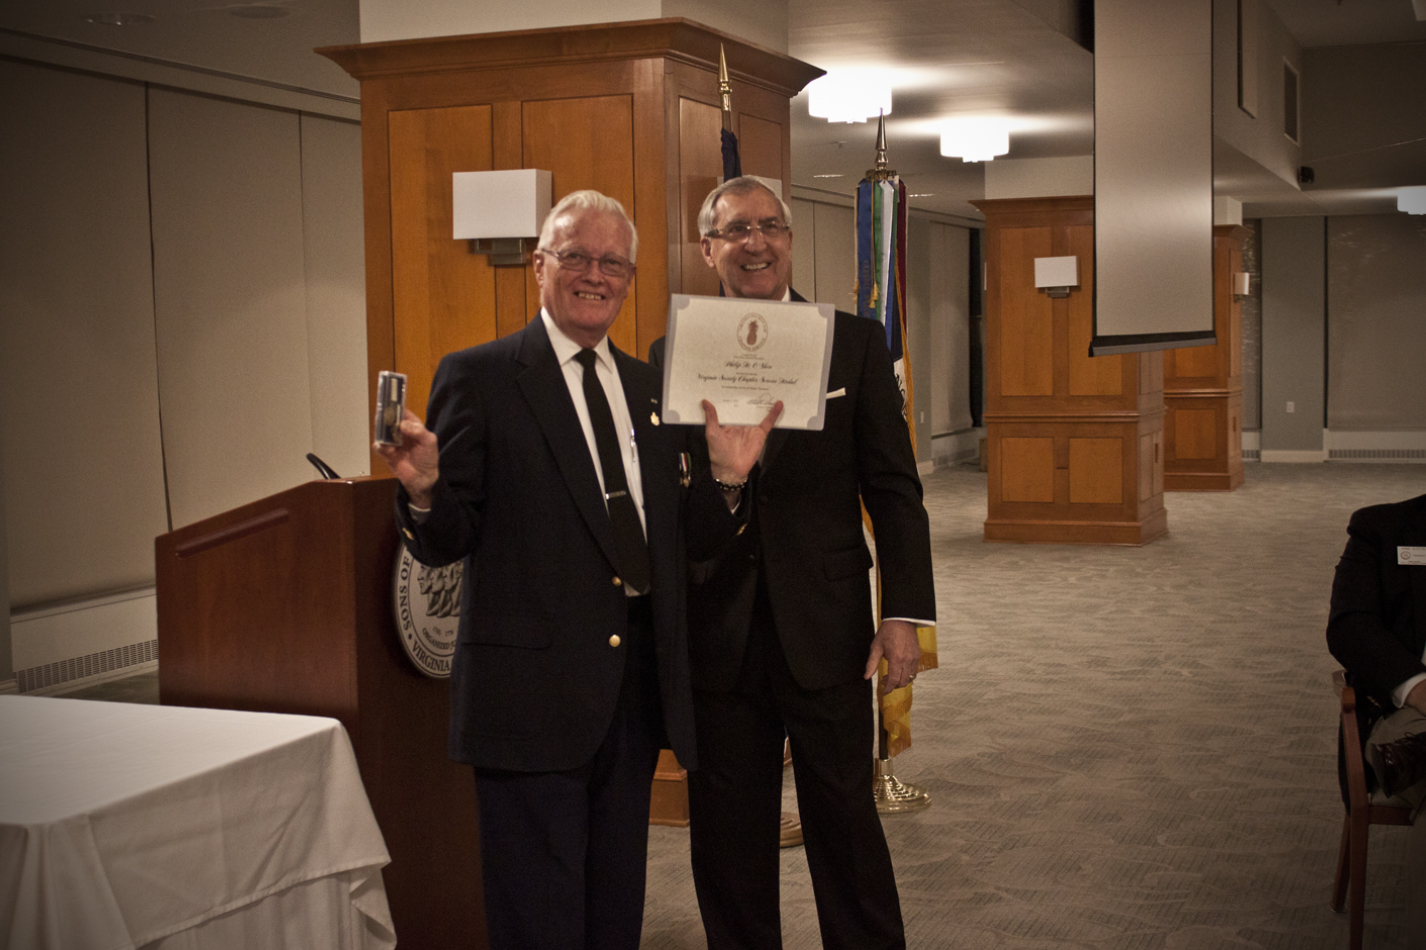 President Hawkins presents Treasurer Mike O'Shea with the Virginia Society Service Medal and Certificate